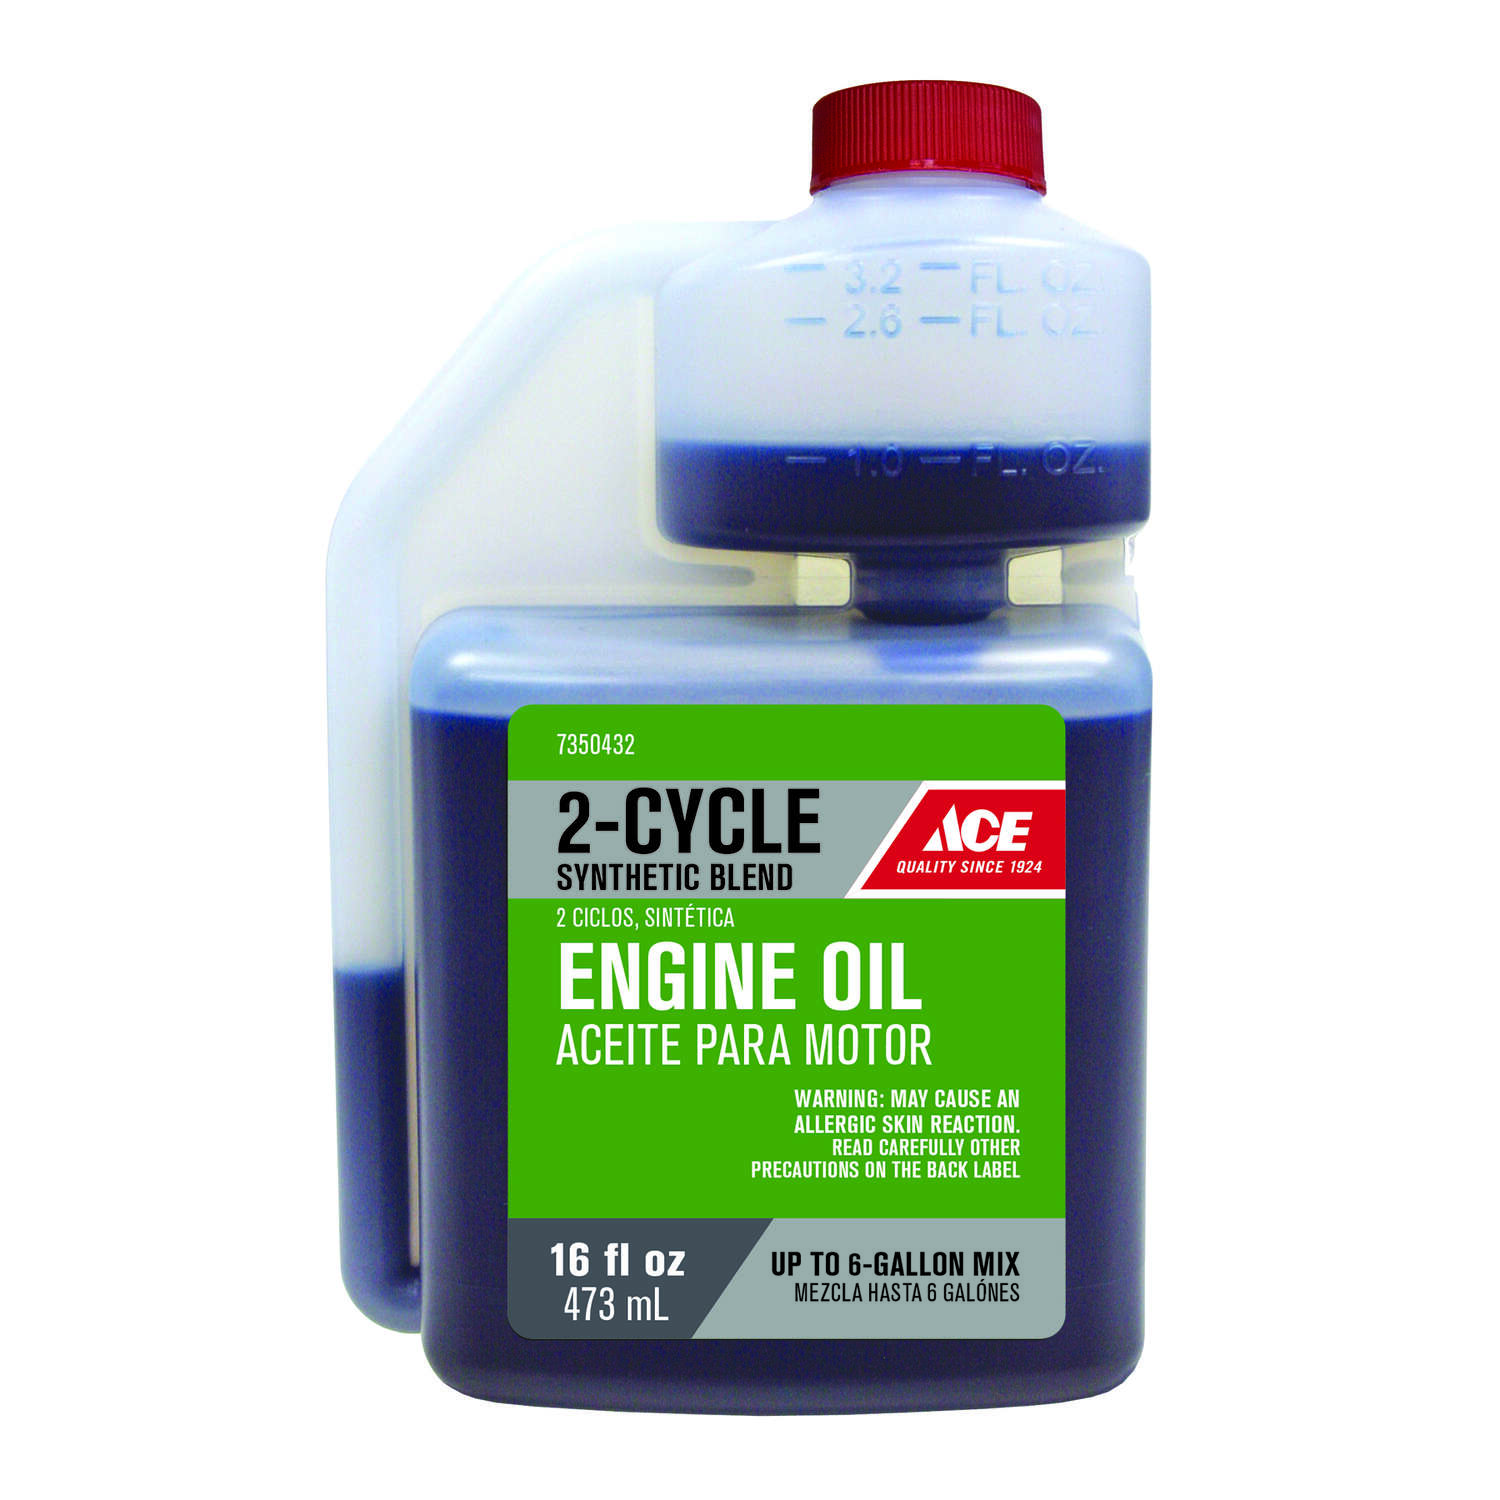 Ace 2-Cycle Synthetic Blend Engine Oil 16 oz.